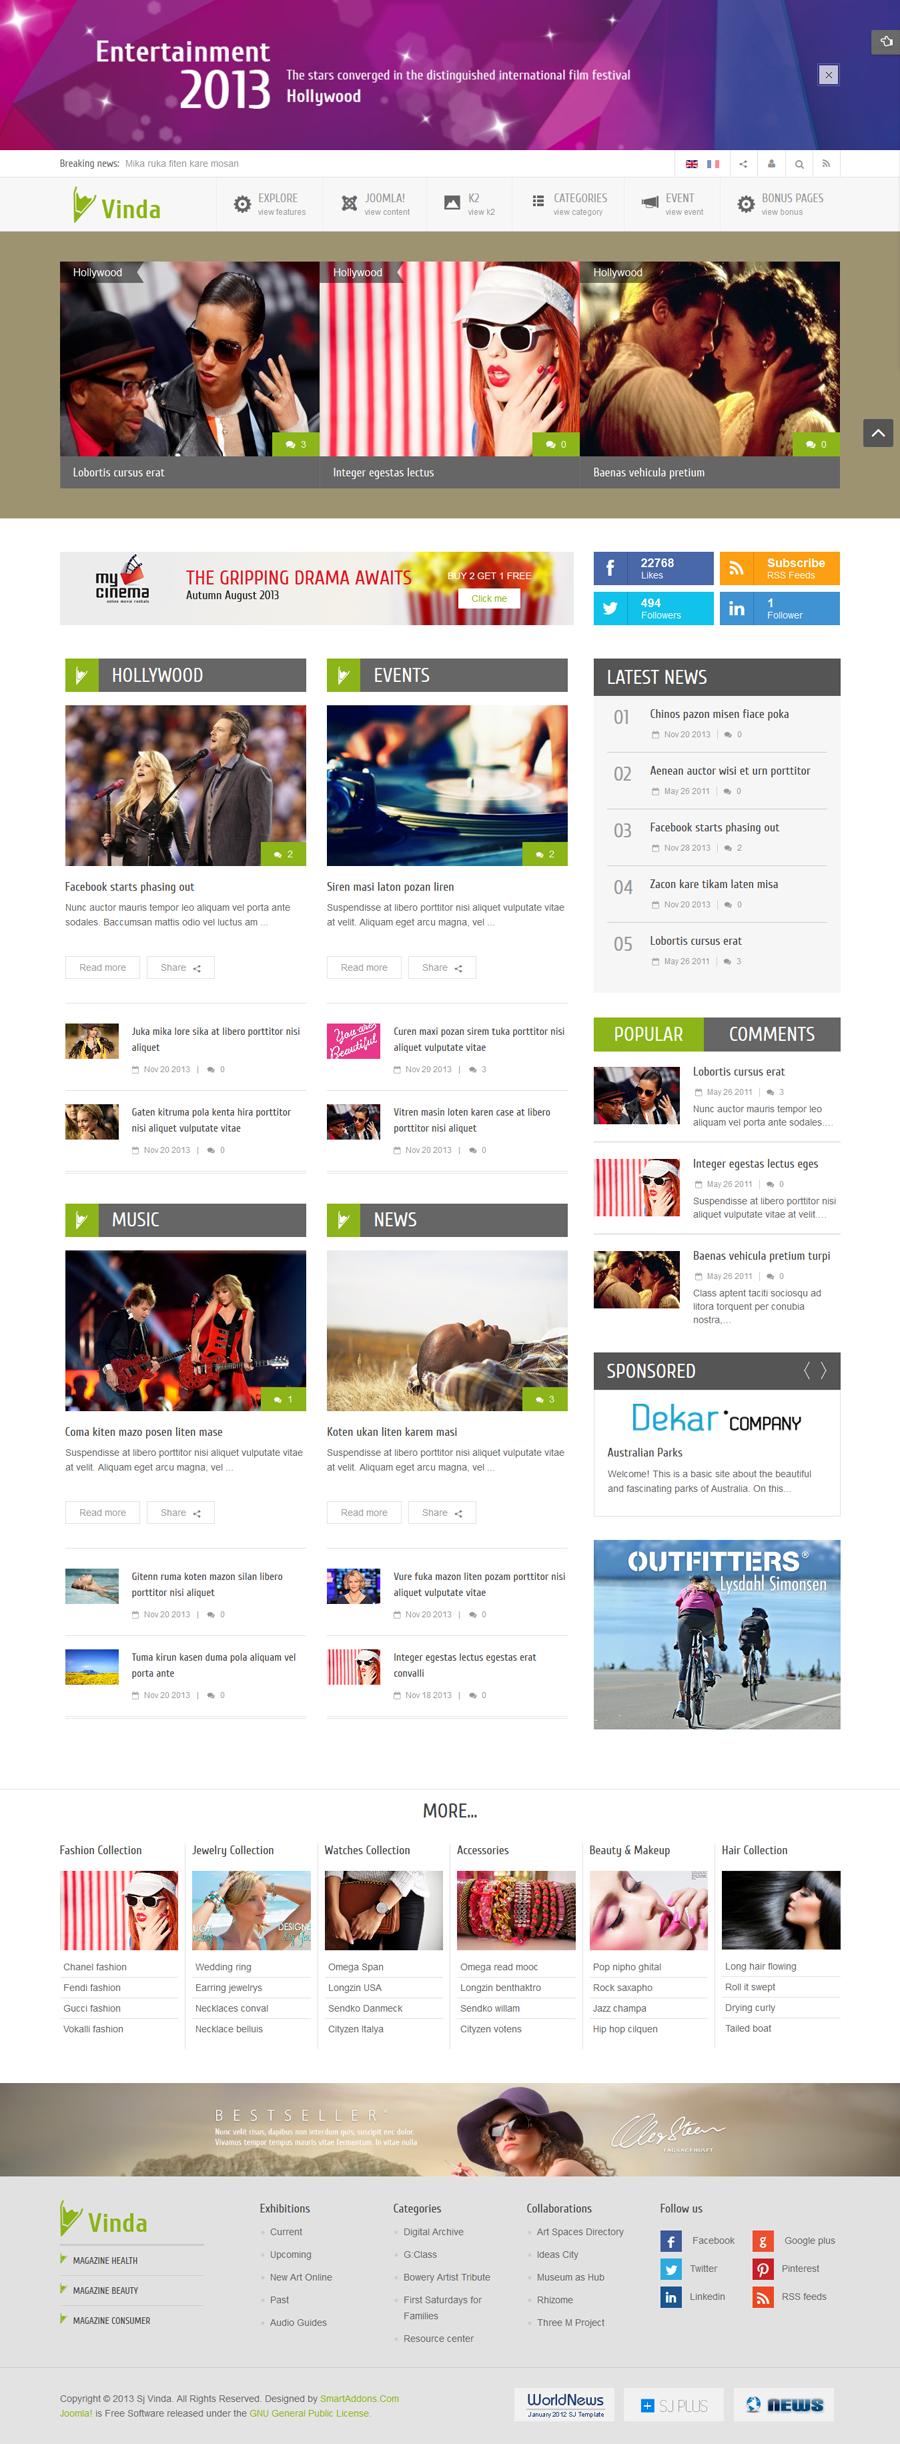 SJ Vinda - Free Joomla Entertainment Template - 03homepage3.png